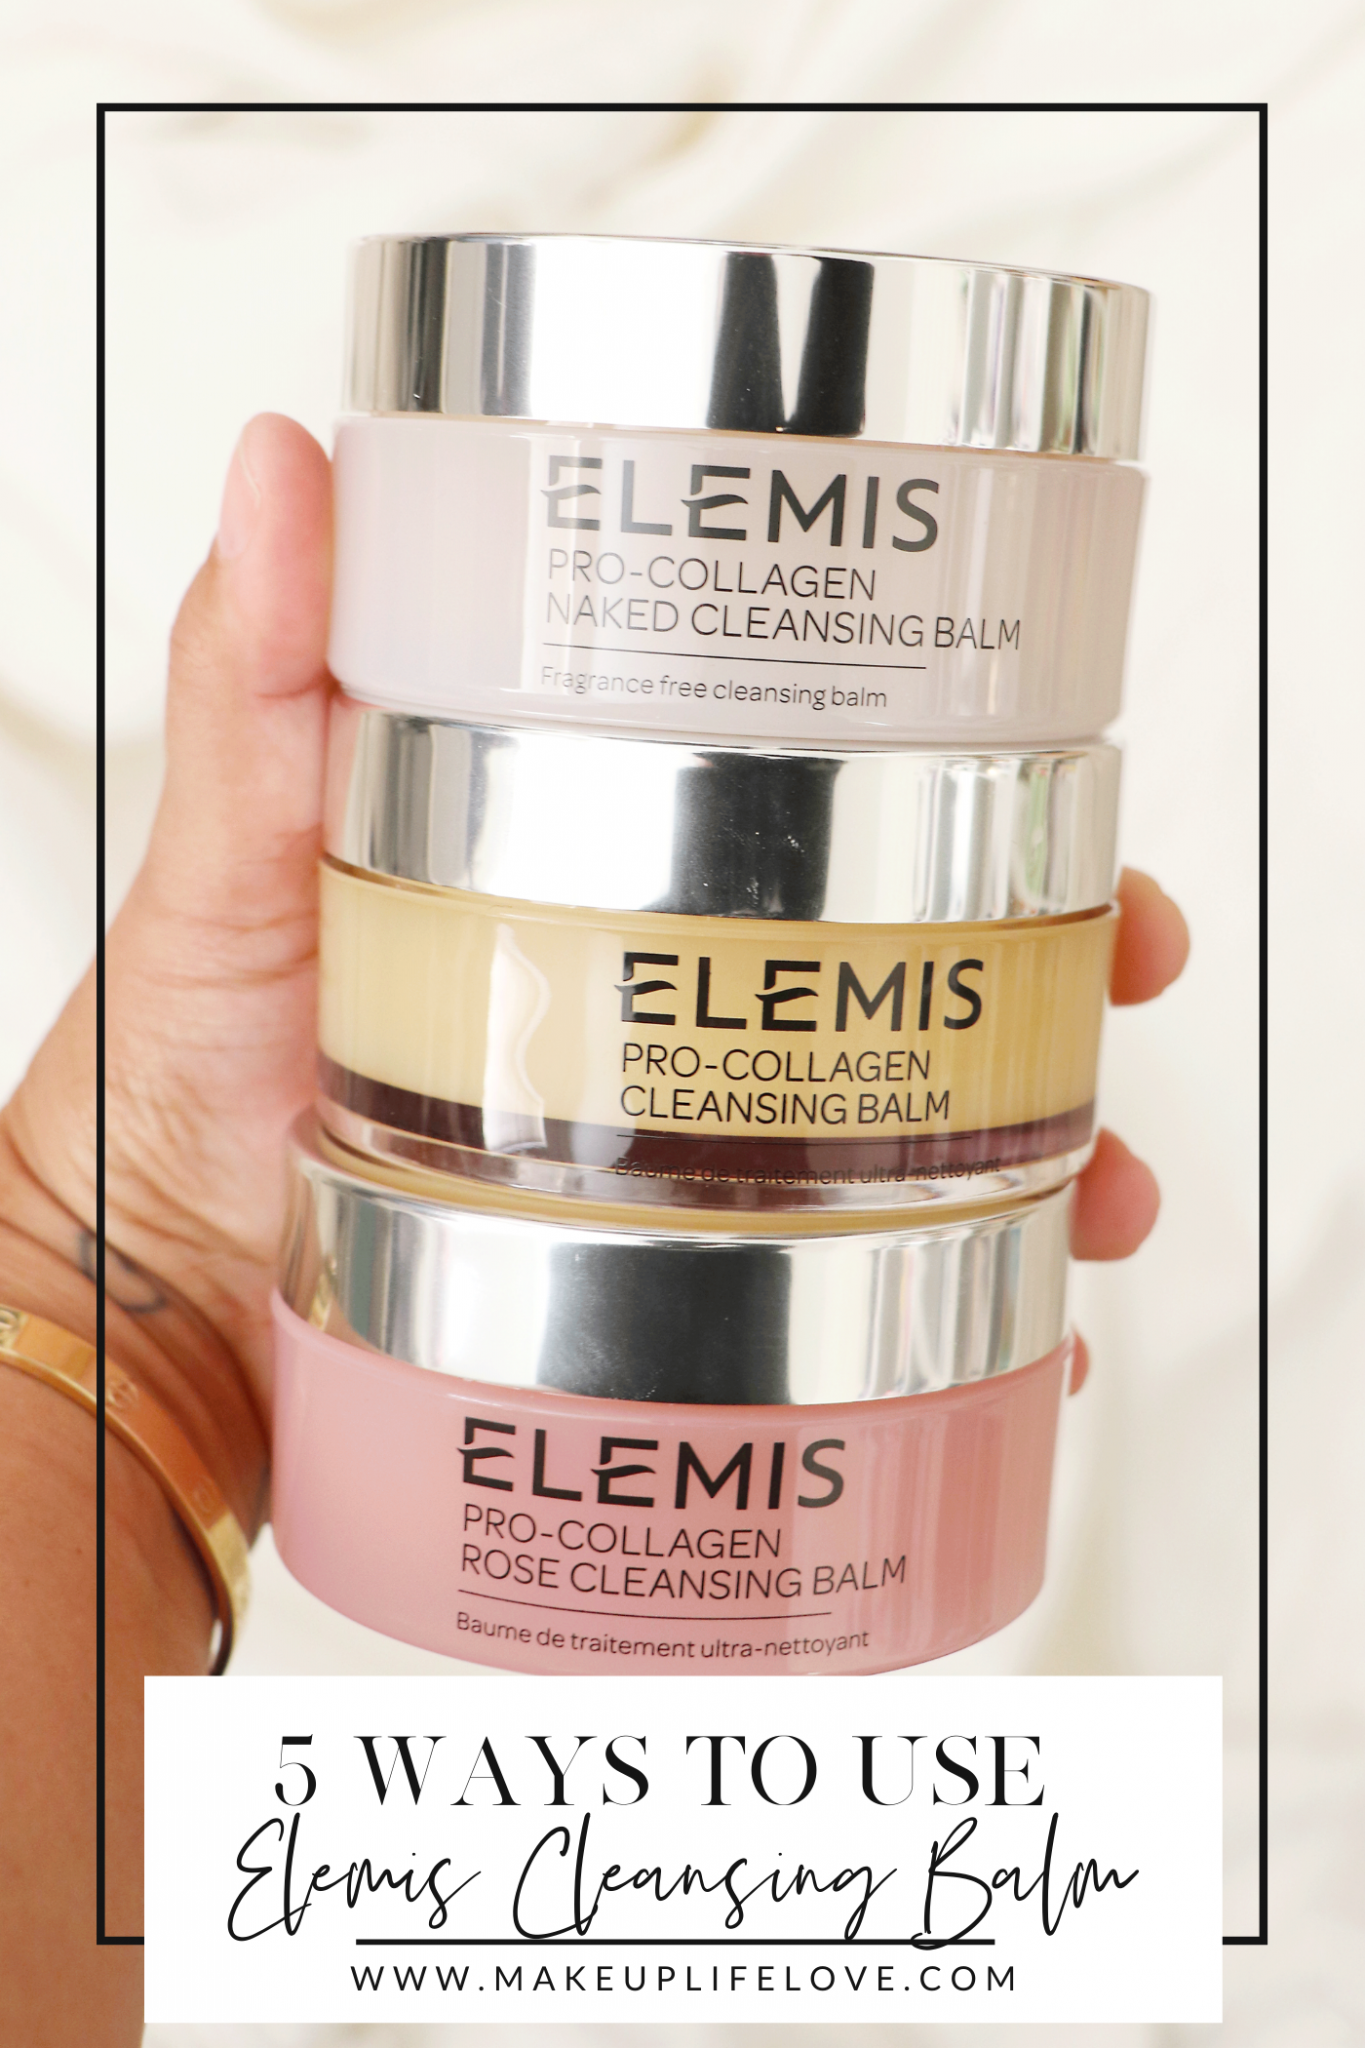 Looking for ways to use Elemis Pro-Collagen Cleansing Balm? Los Angeles Blogger Jamie Lewis is sharing her top favorite ways here!